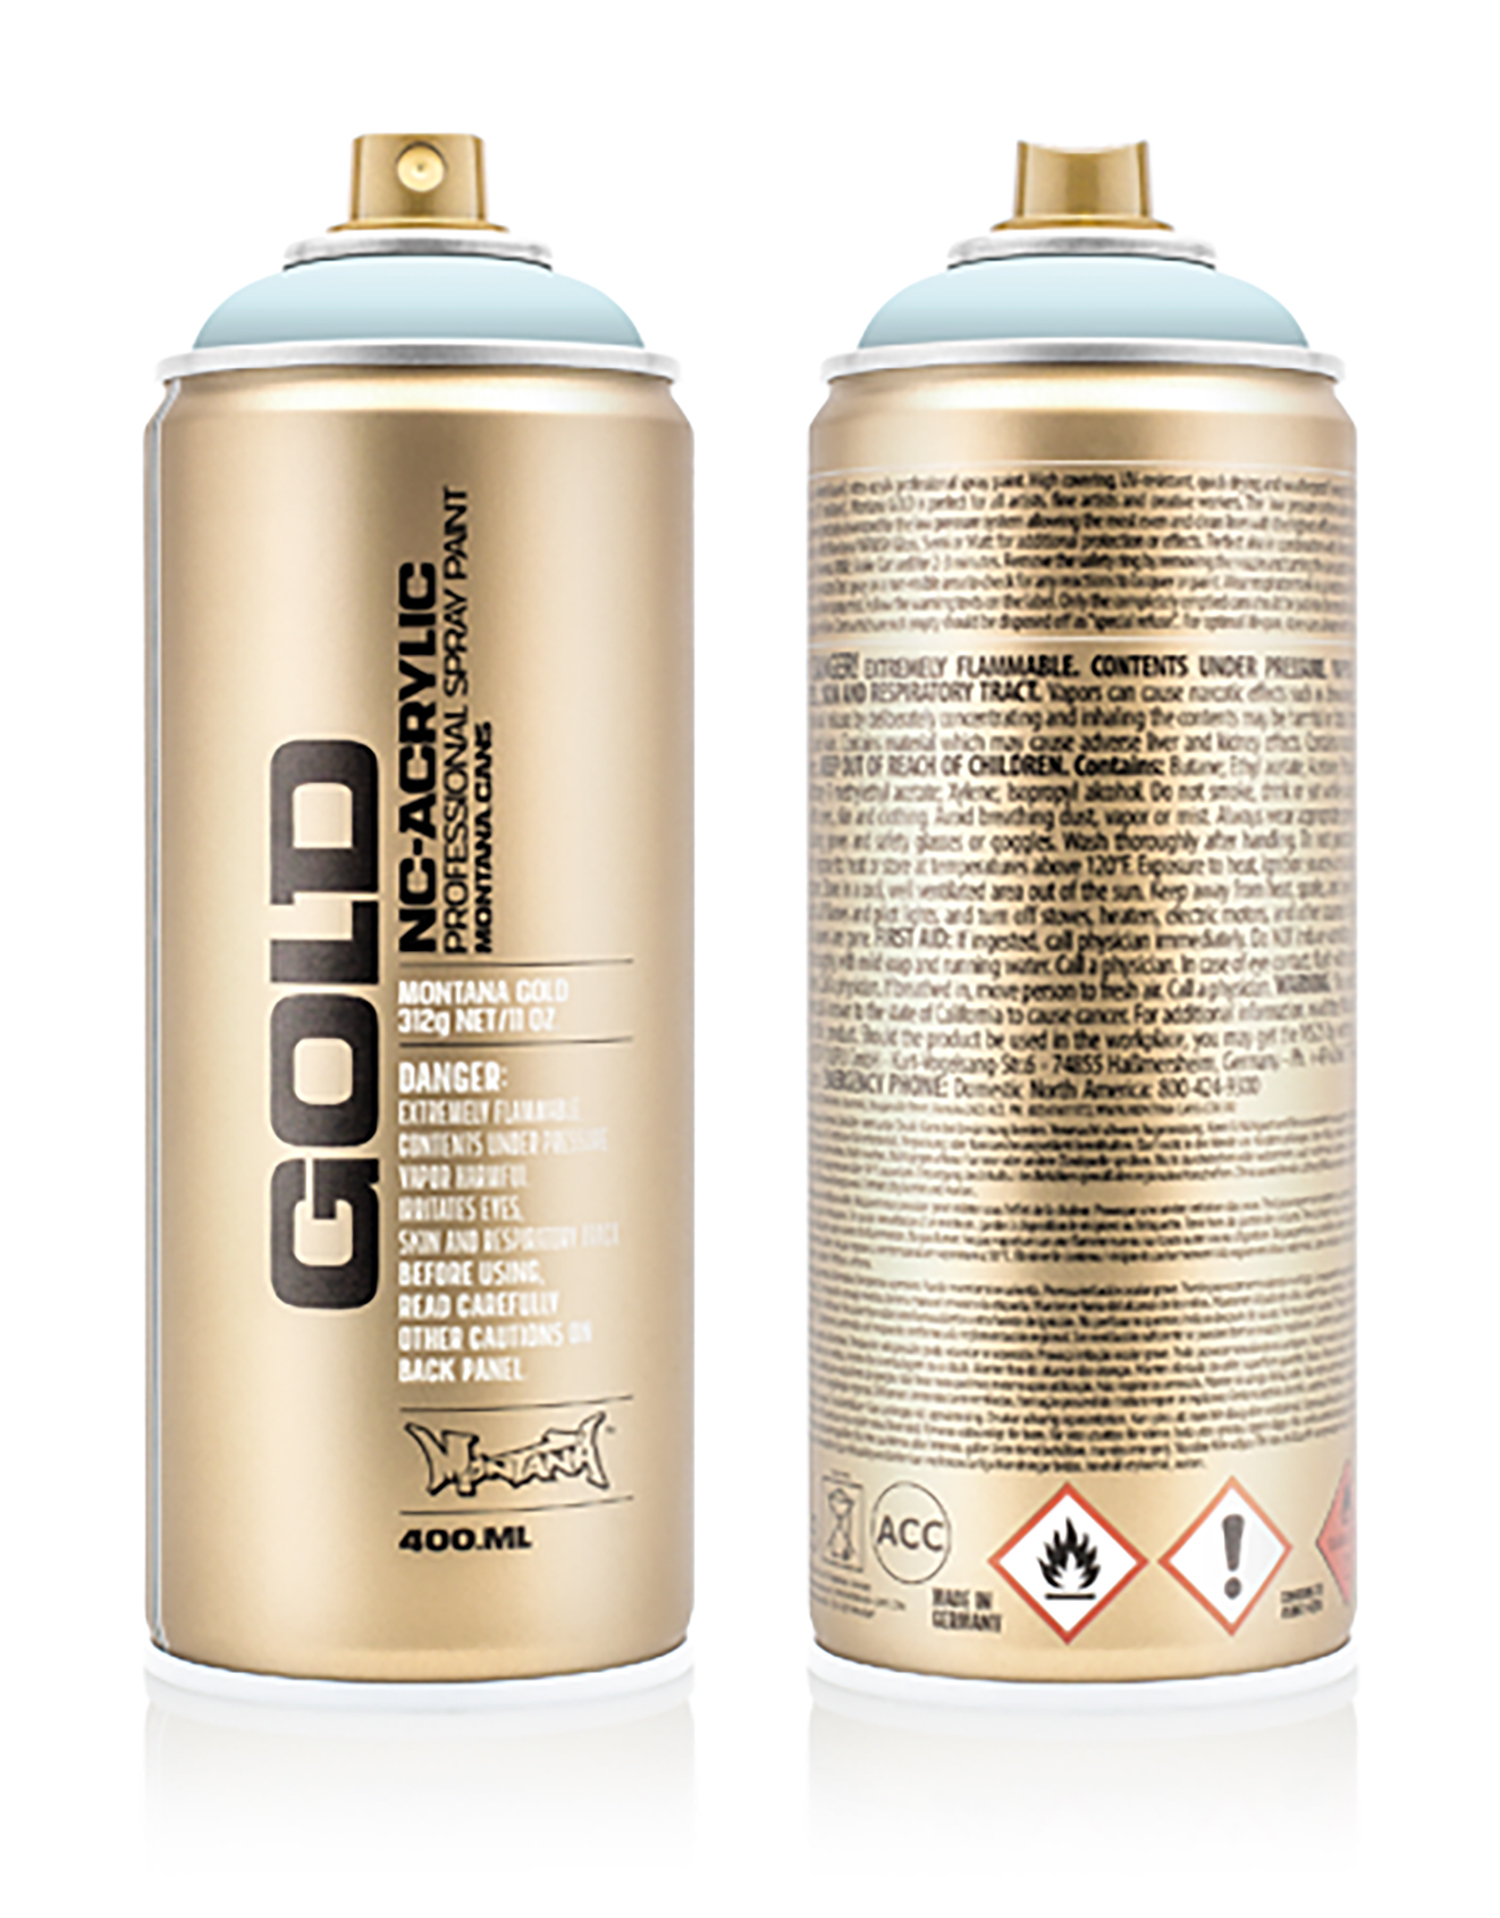 MONTANA-GOLD-SPRAY-400ML-G-5000